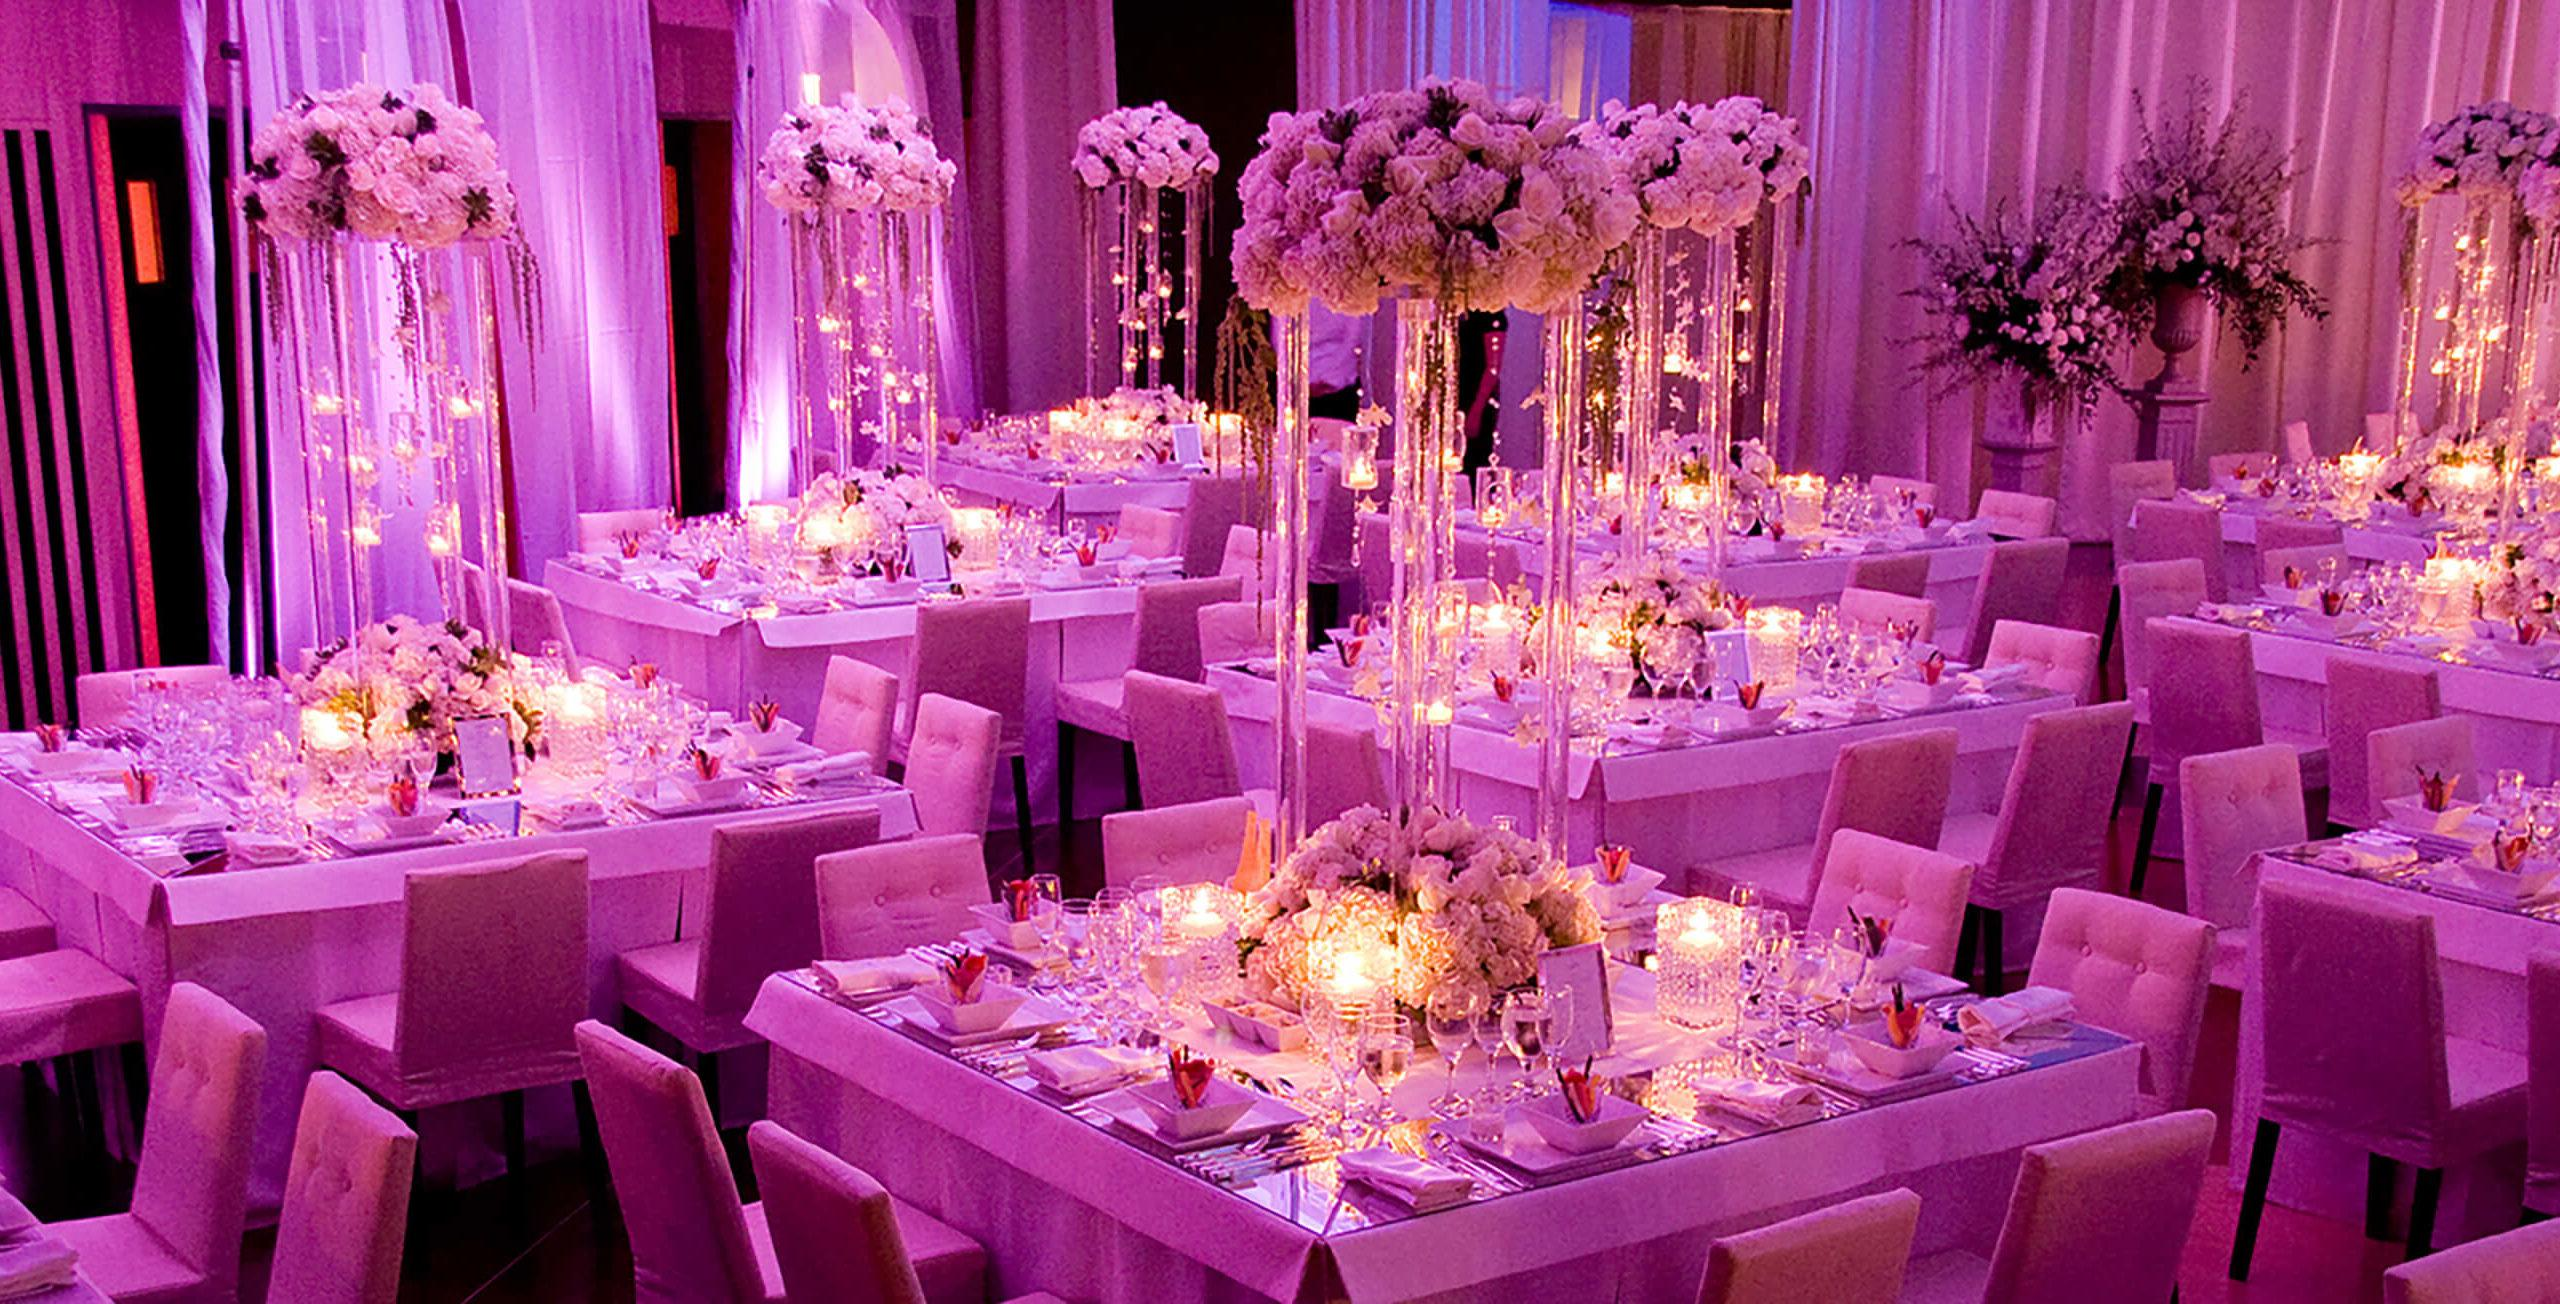 Beautiful wedding set up with floral decorations at The Carlu event venue in Toronto